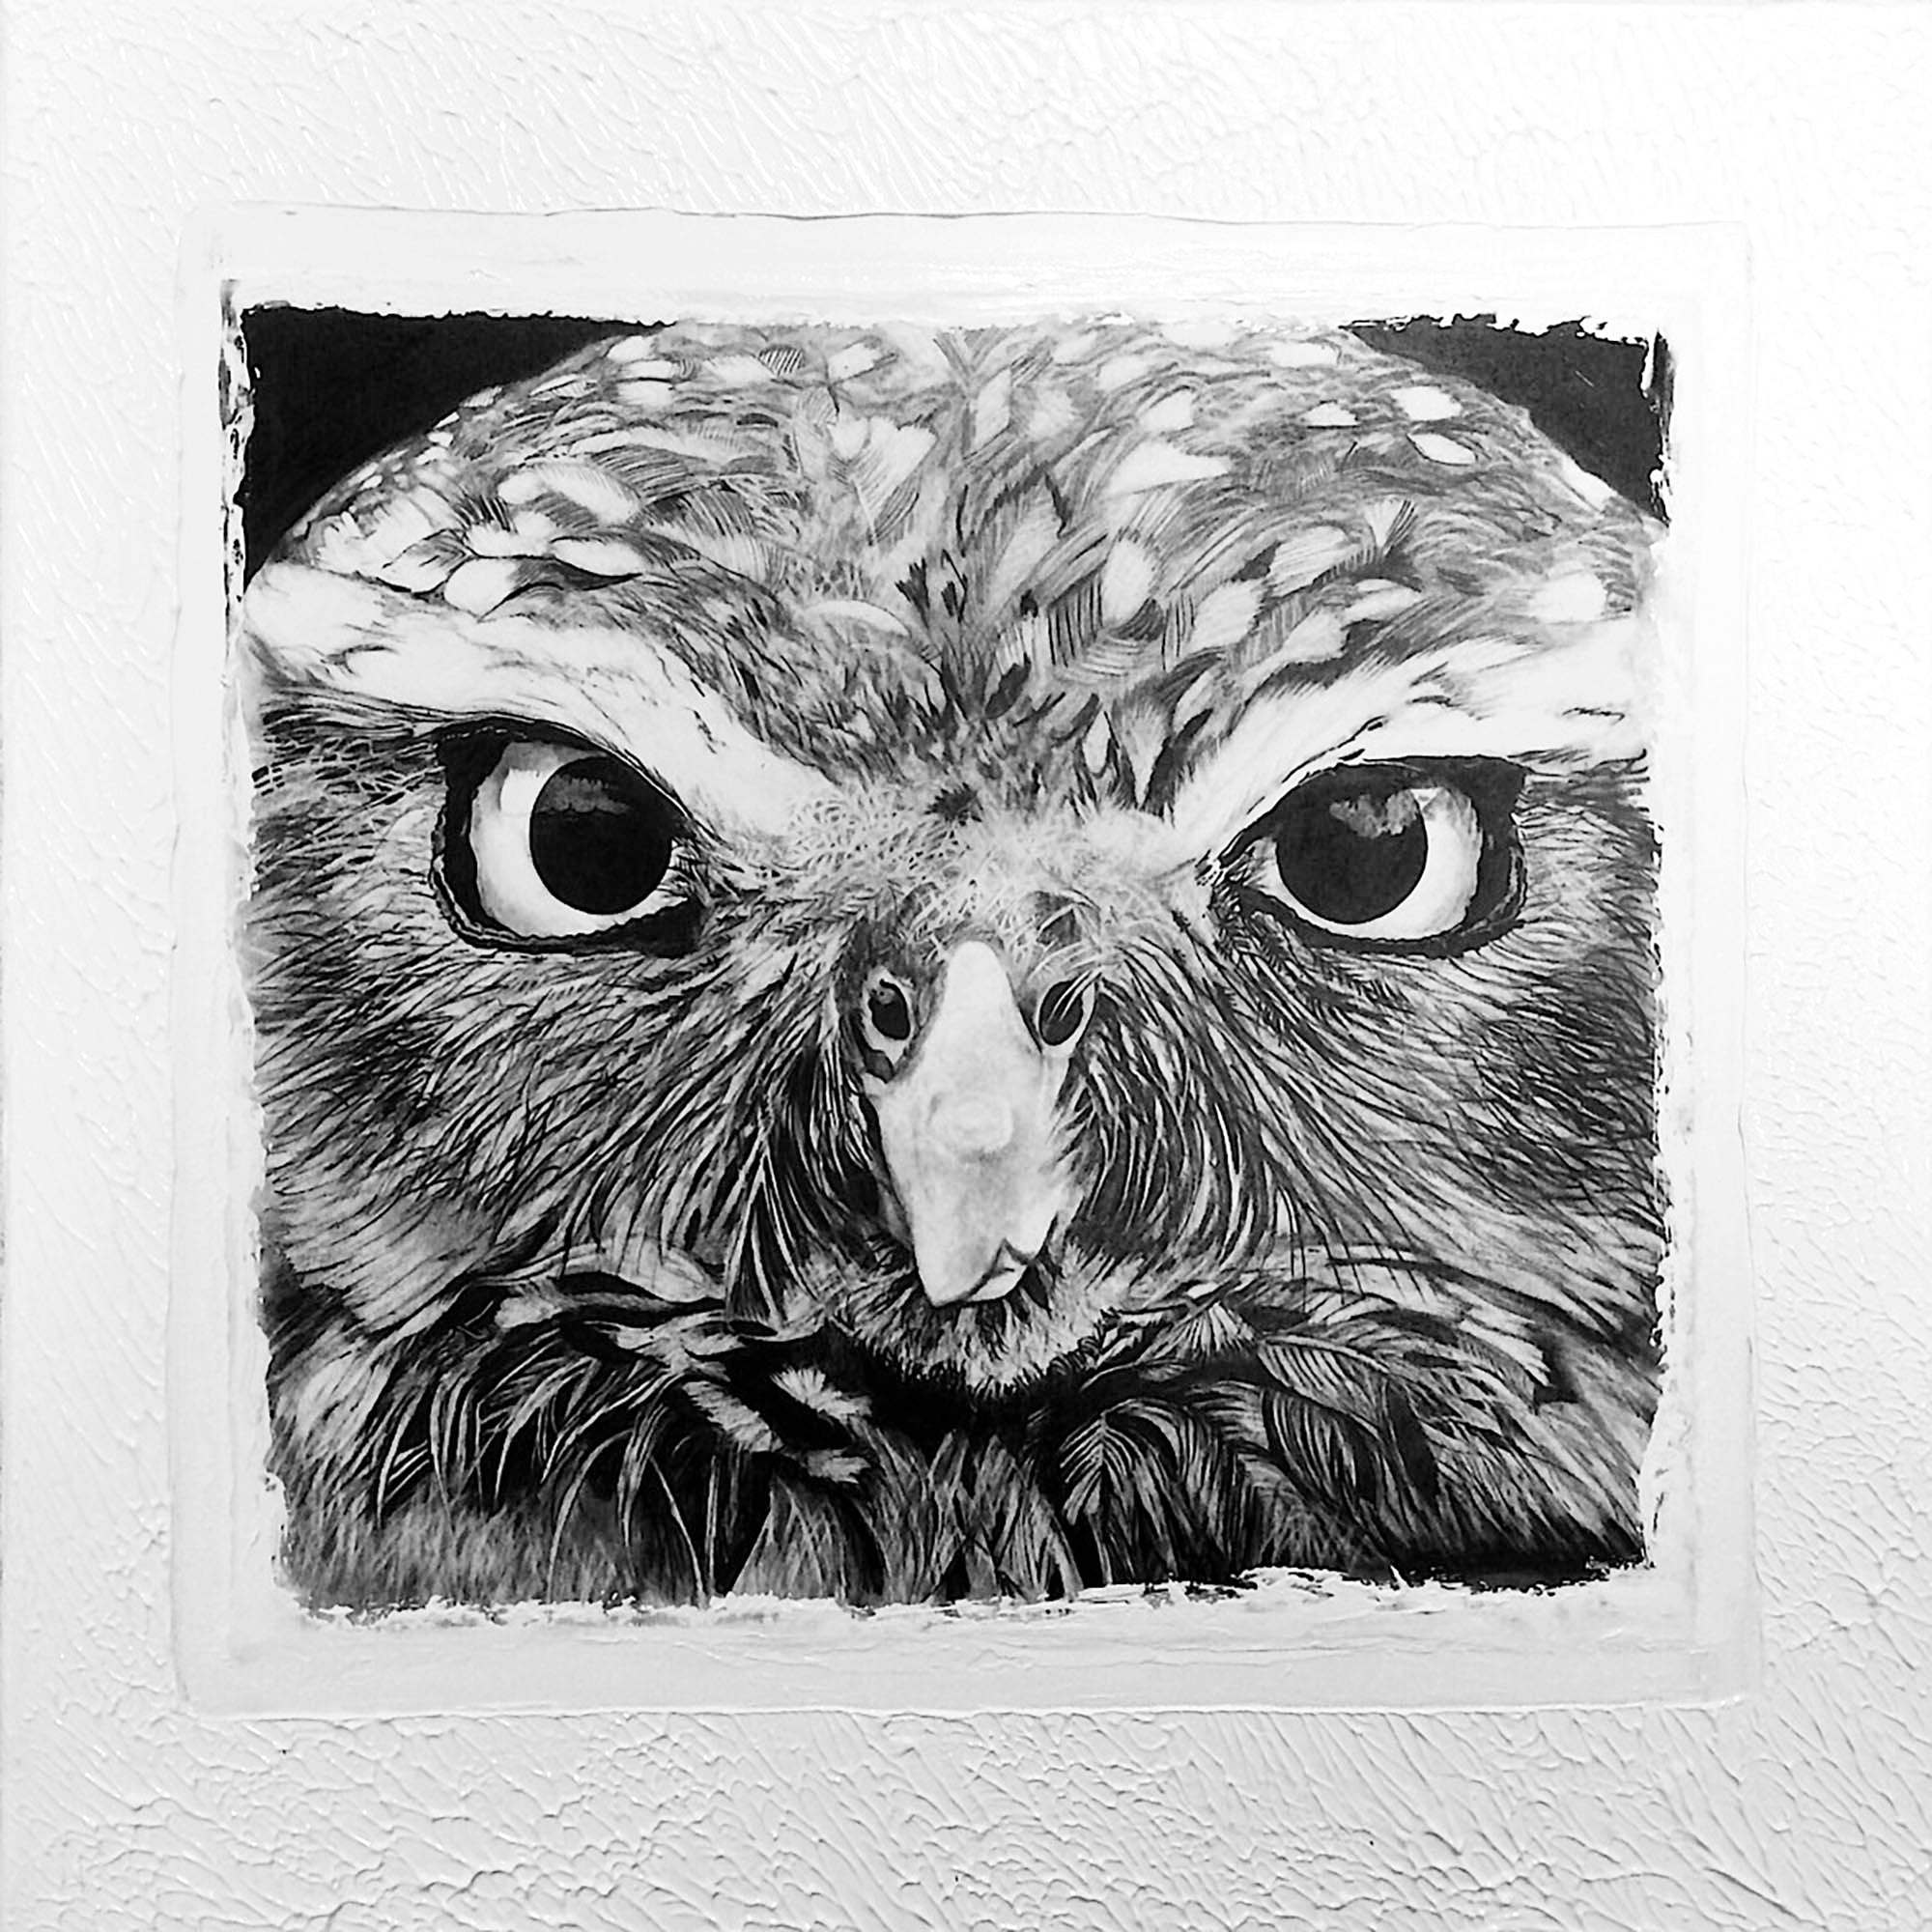 - 'Owl'60 x 60cmGraphite on paper, adhered to painted canvas and sealed with a gel coating. Ready to hang.Also available as a print$450ENQUIRE